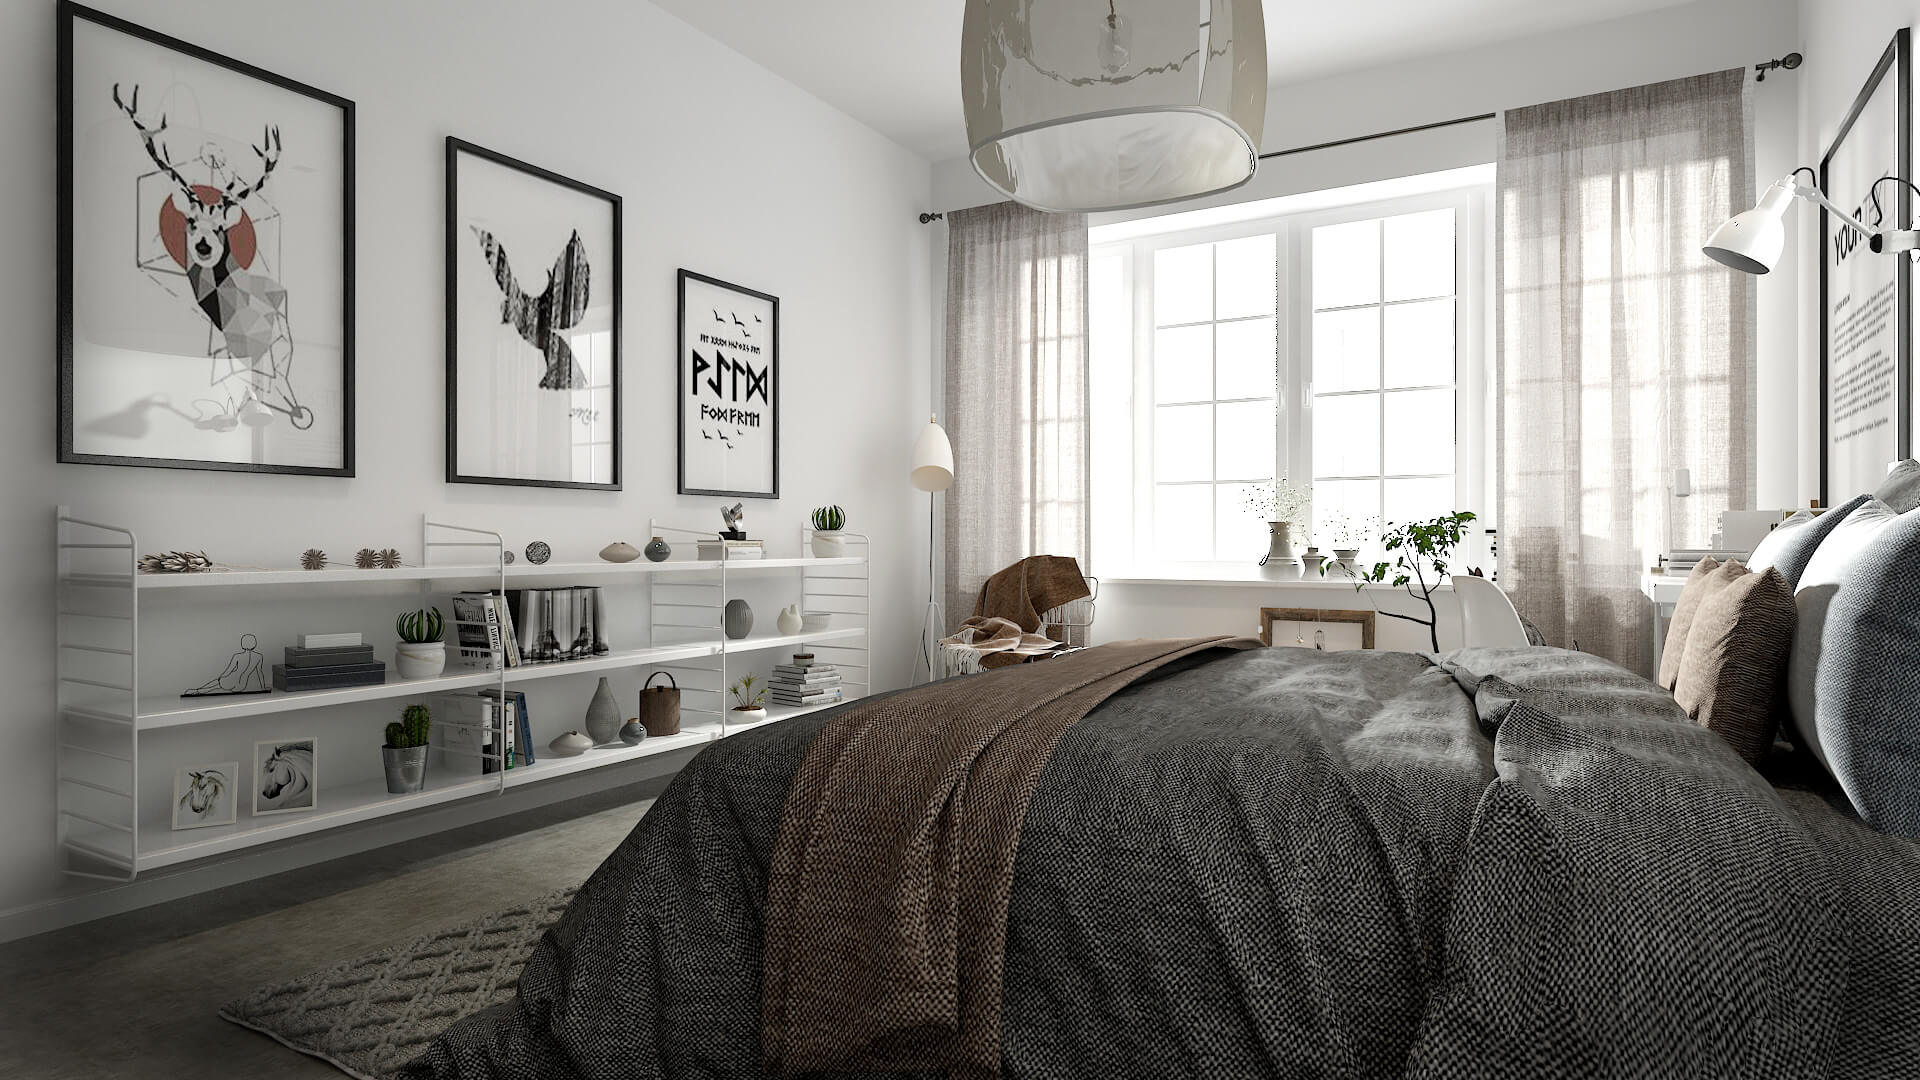 Modern marrakesh rug and warm accents in the all-white Scandinavian bedroom